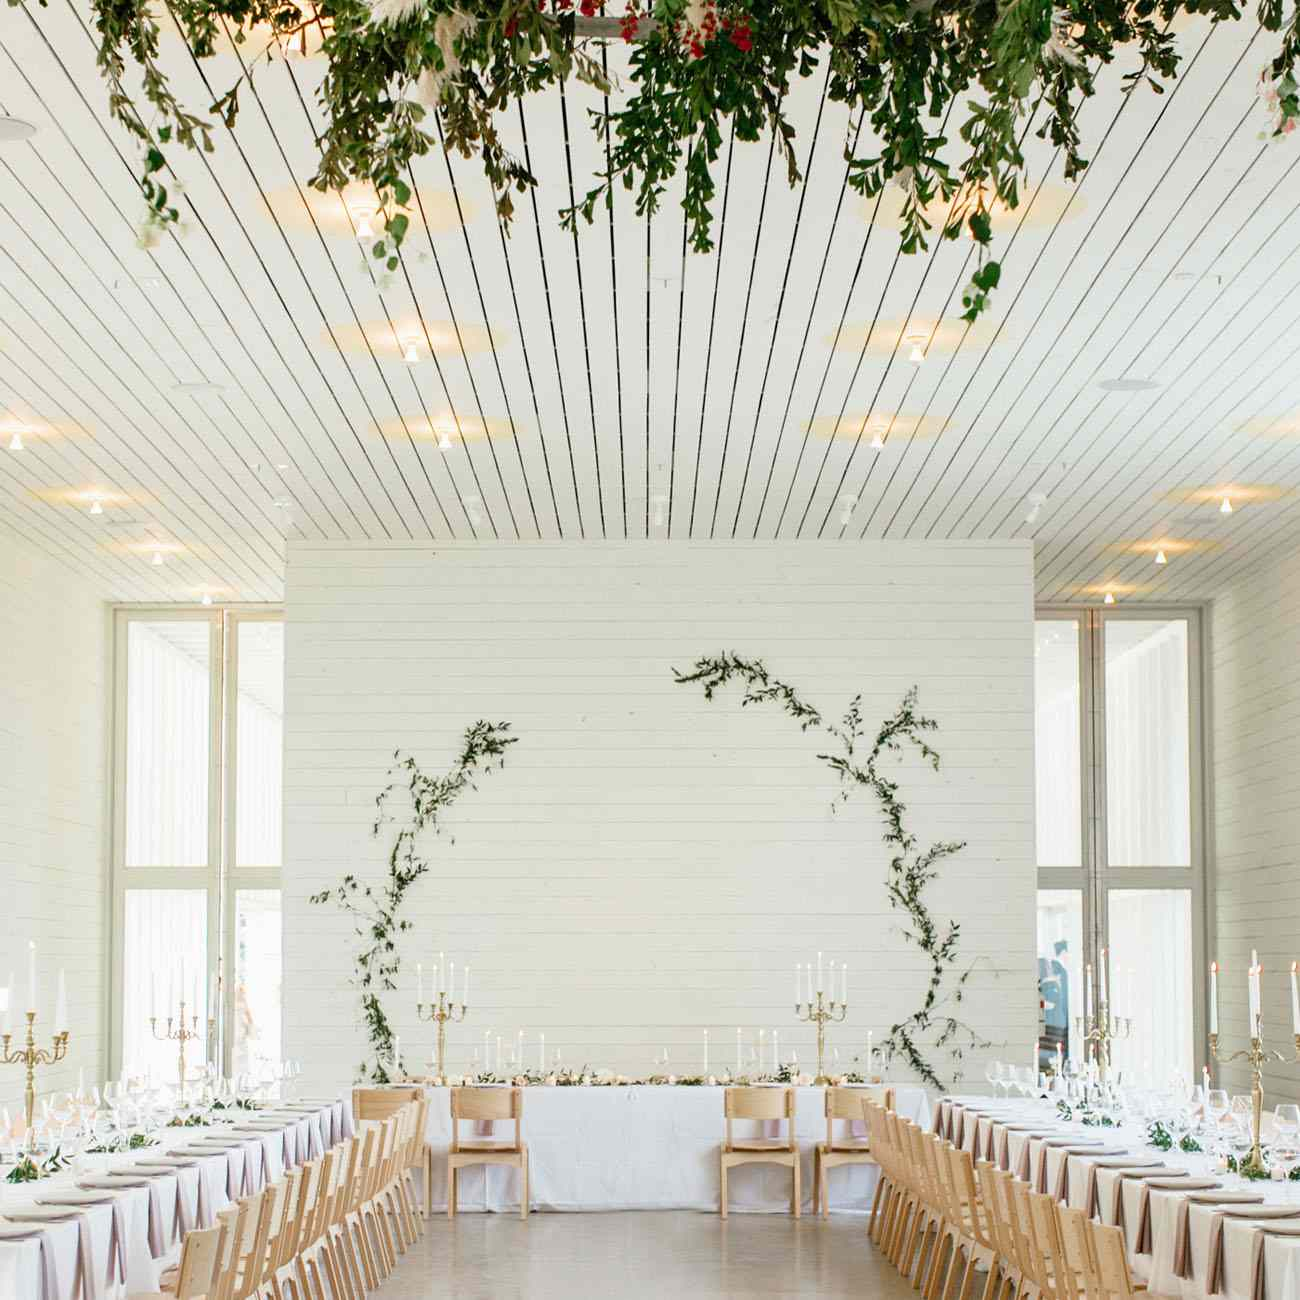 Simple Wedding Stage Decoration Ideas: 30 Minimalist Wedding Ideas For The Cool Bride